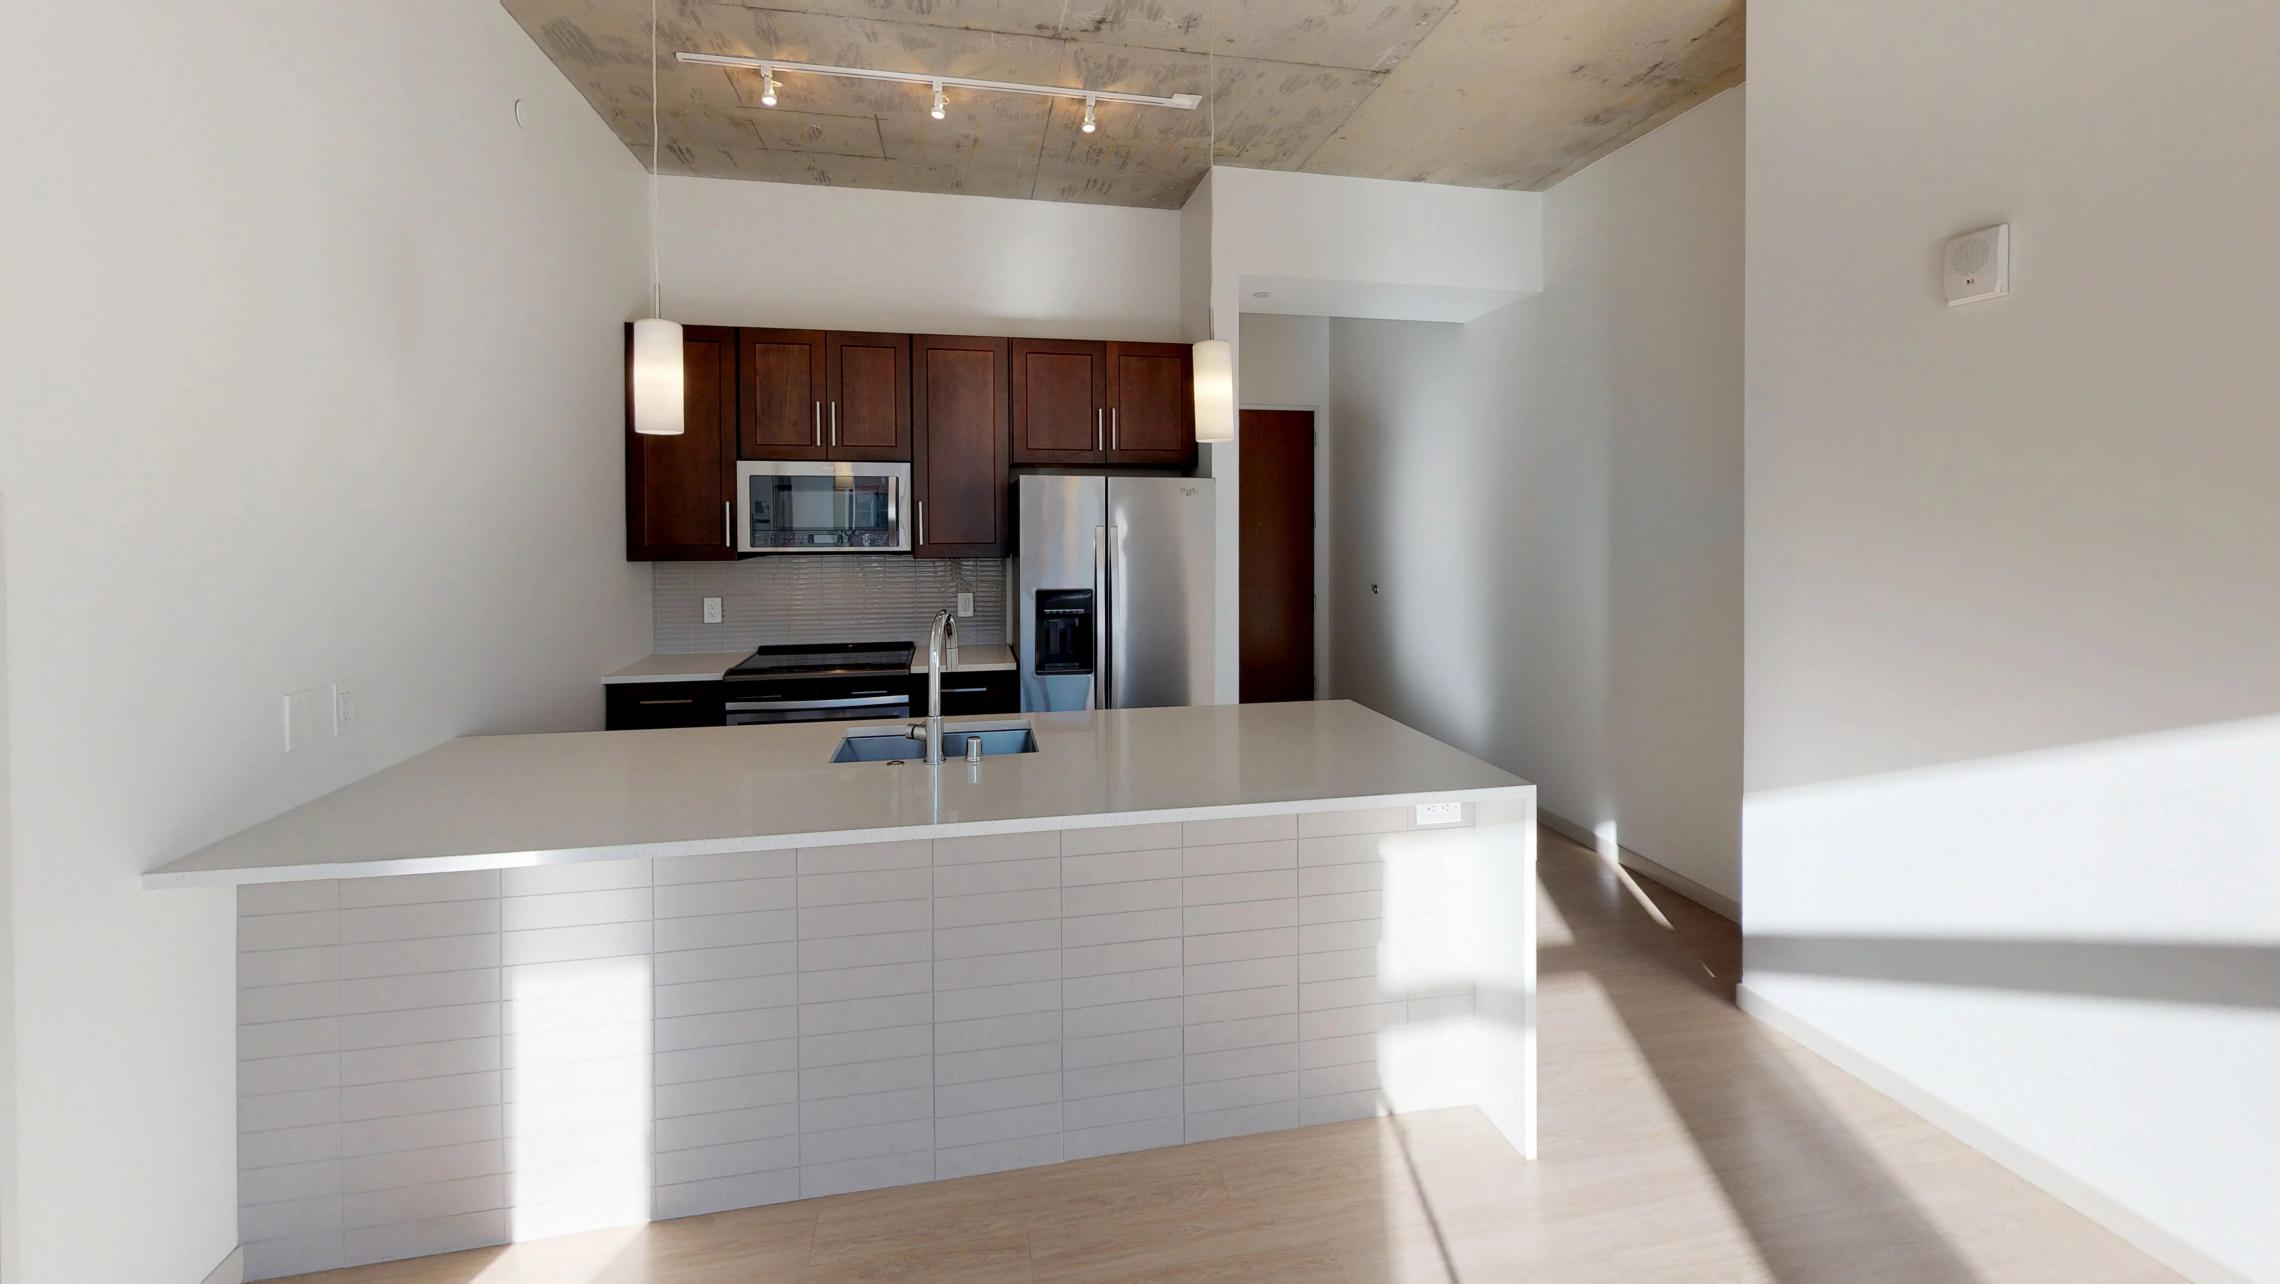 Pressman-211-Apartment-One-Bedroom-Luxury-Modern-Upscale-Downtown-Capitol-Concrete-Madison-Kitchen-Island-Living-Space-Sunny-Natural-Light